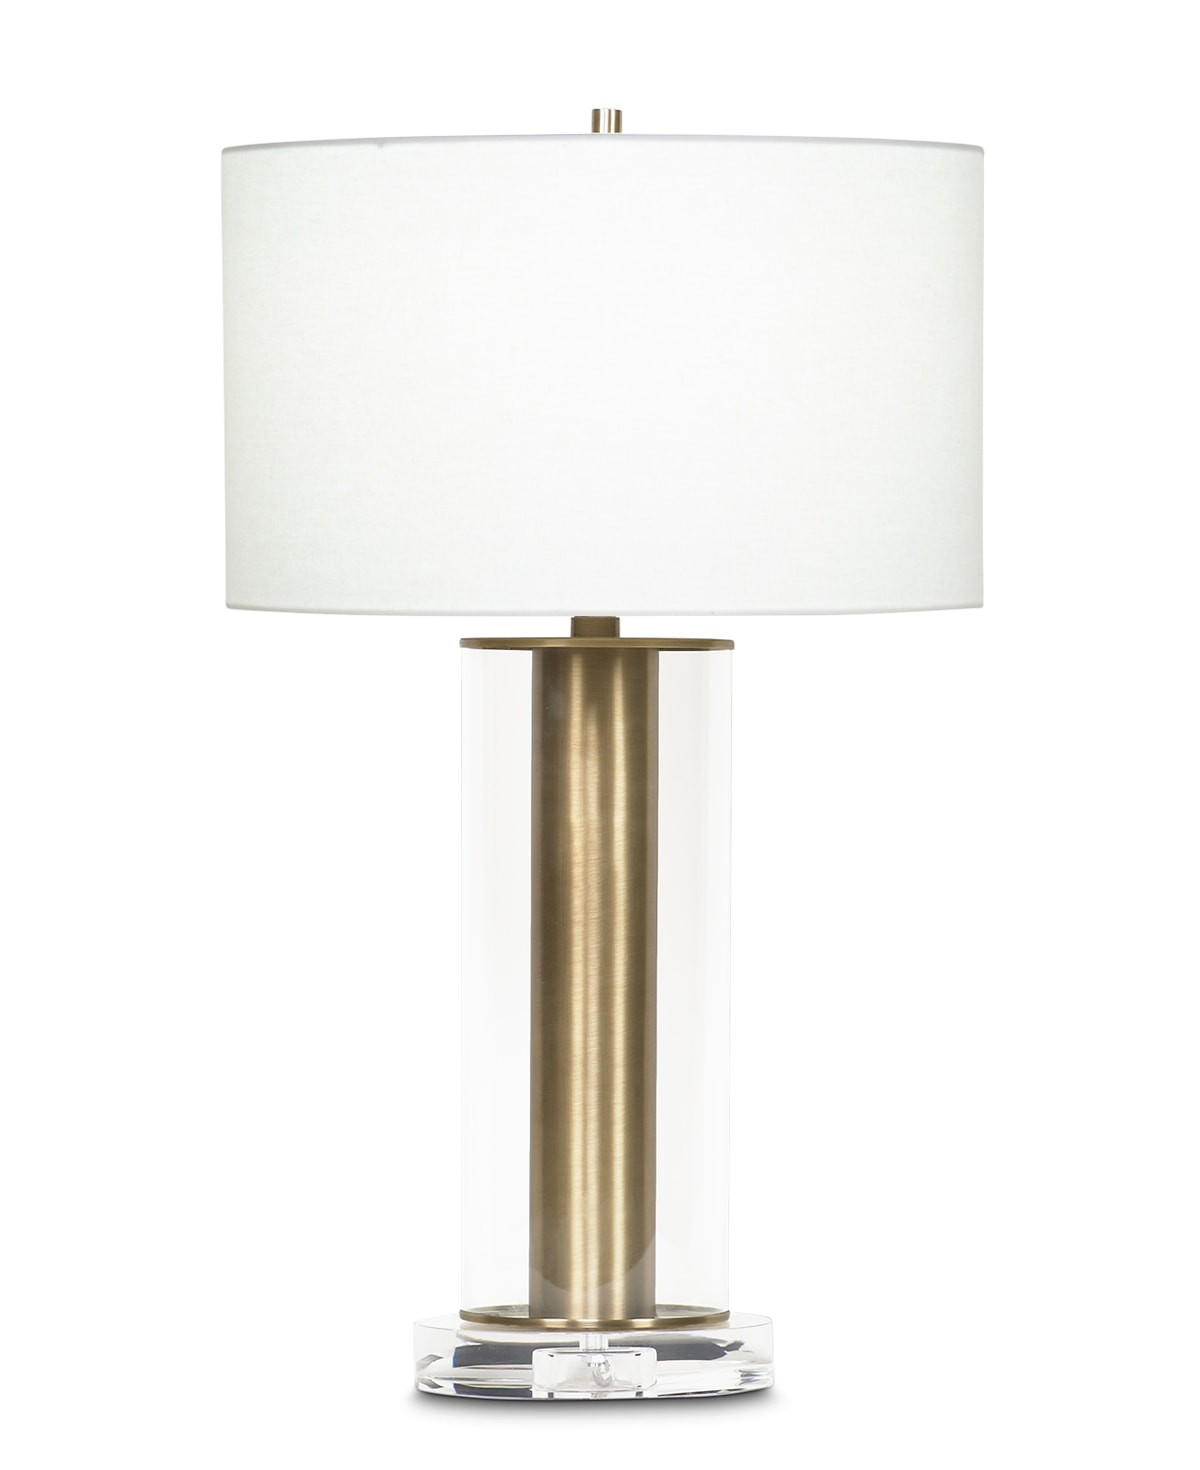 FlowDecor Latour Table Lamp in metal with antique brass finish and glass and crystal and off-white linen drum shade (# 3676)